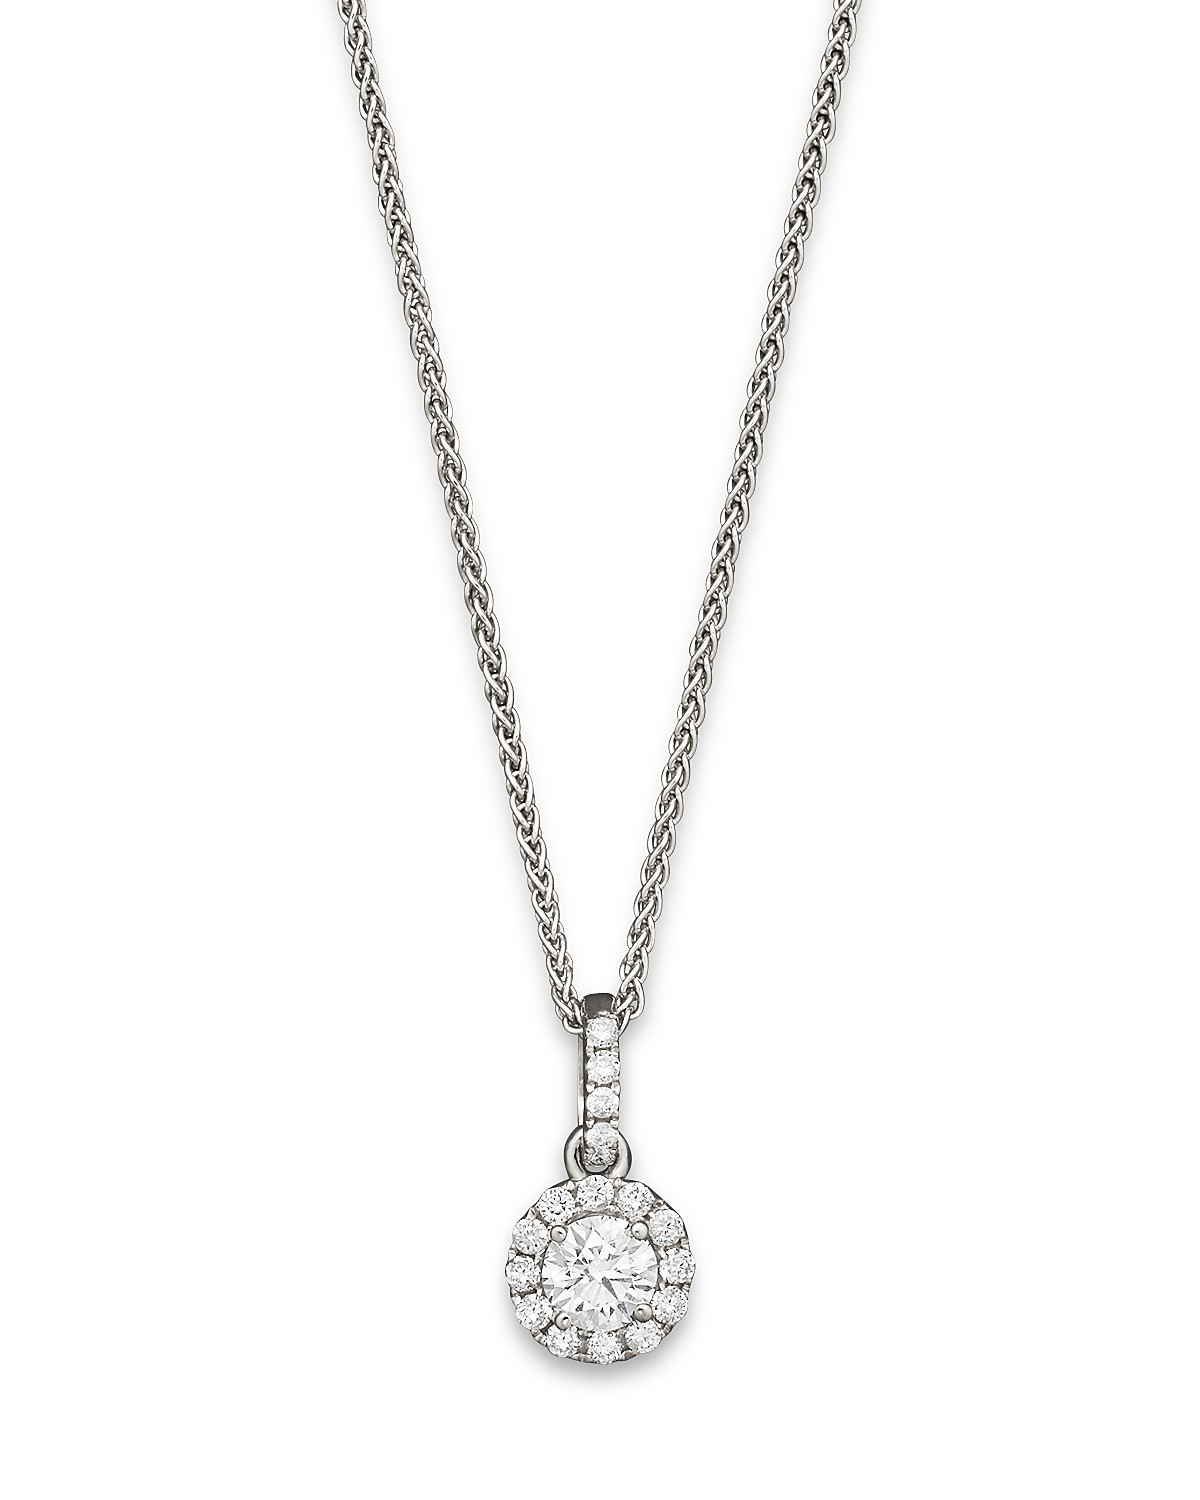 necklaces necklace carat pendant platinum baunat en diamond round with solitaire